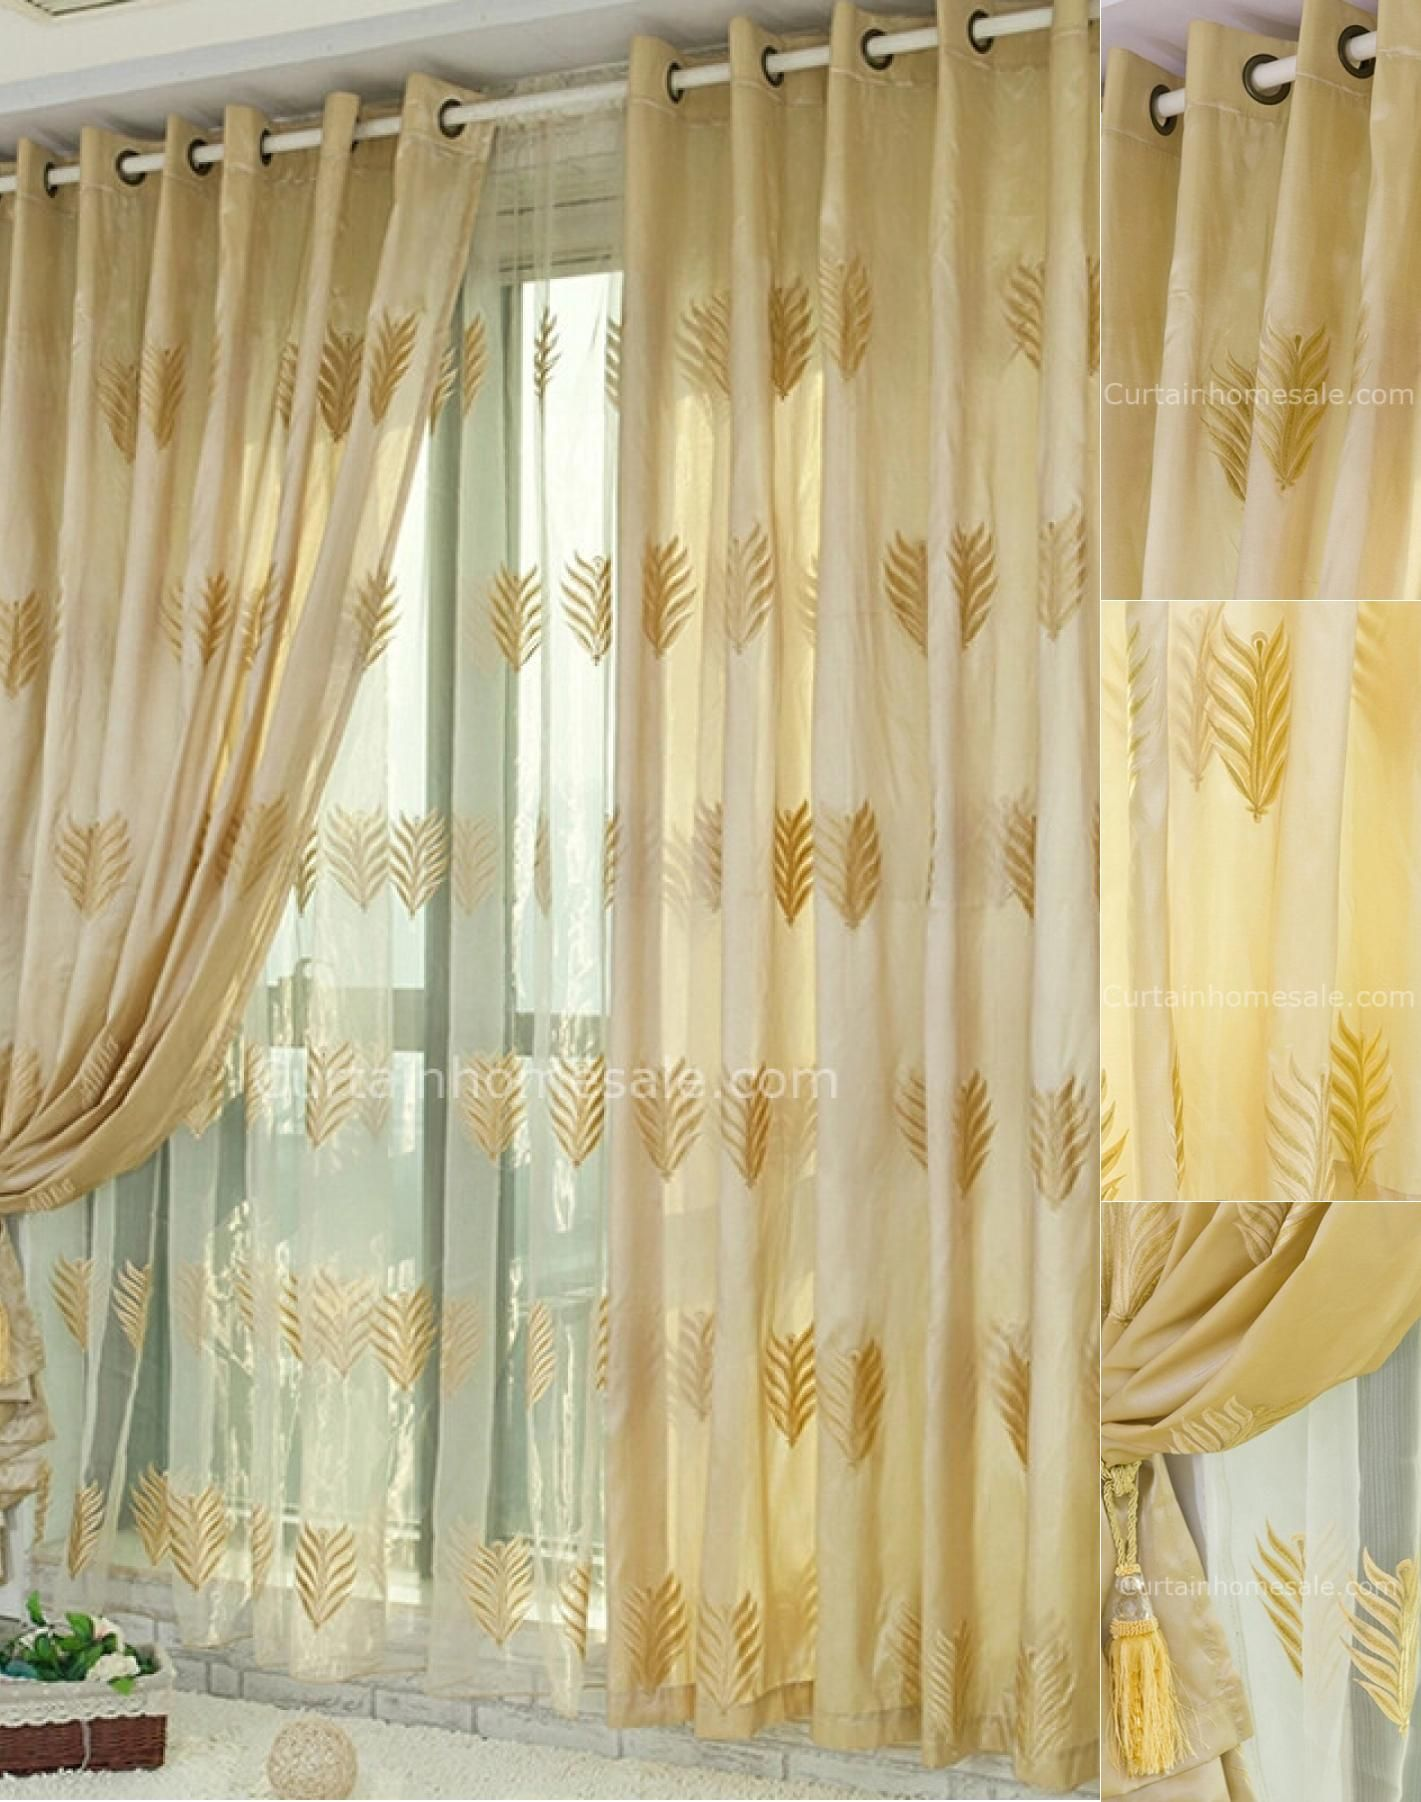 Fabulous Leaf Patterns Embroidery Bedroom Blackout Yellow Gold Curtains Hang I Pinterest